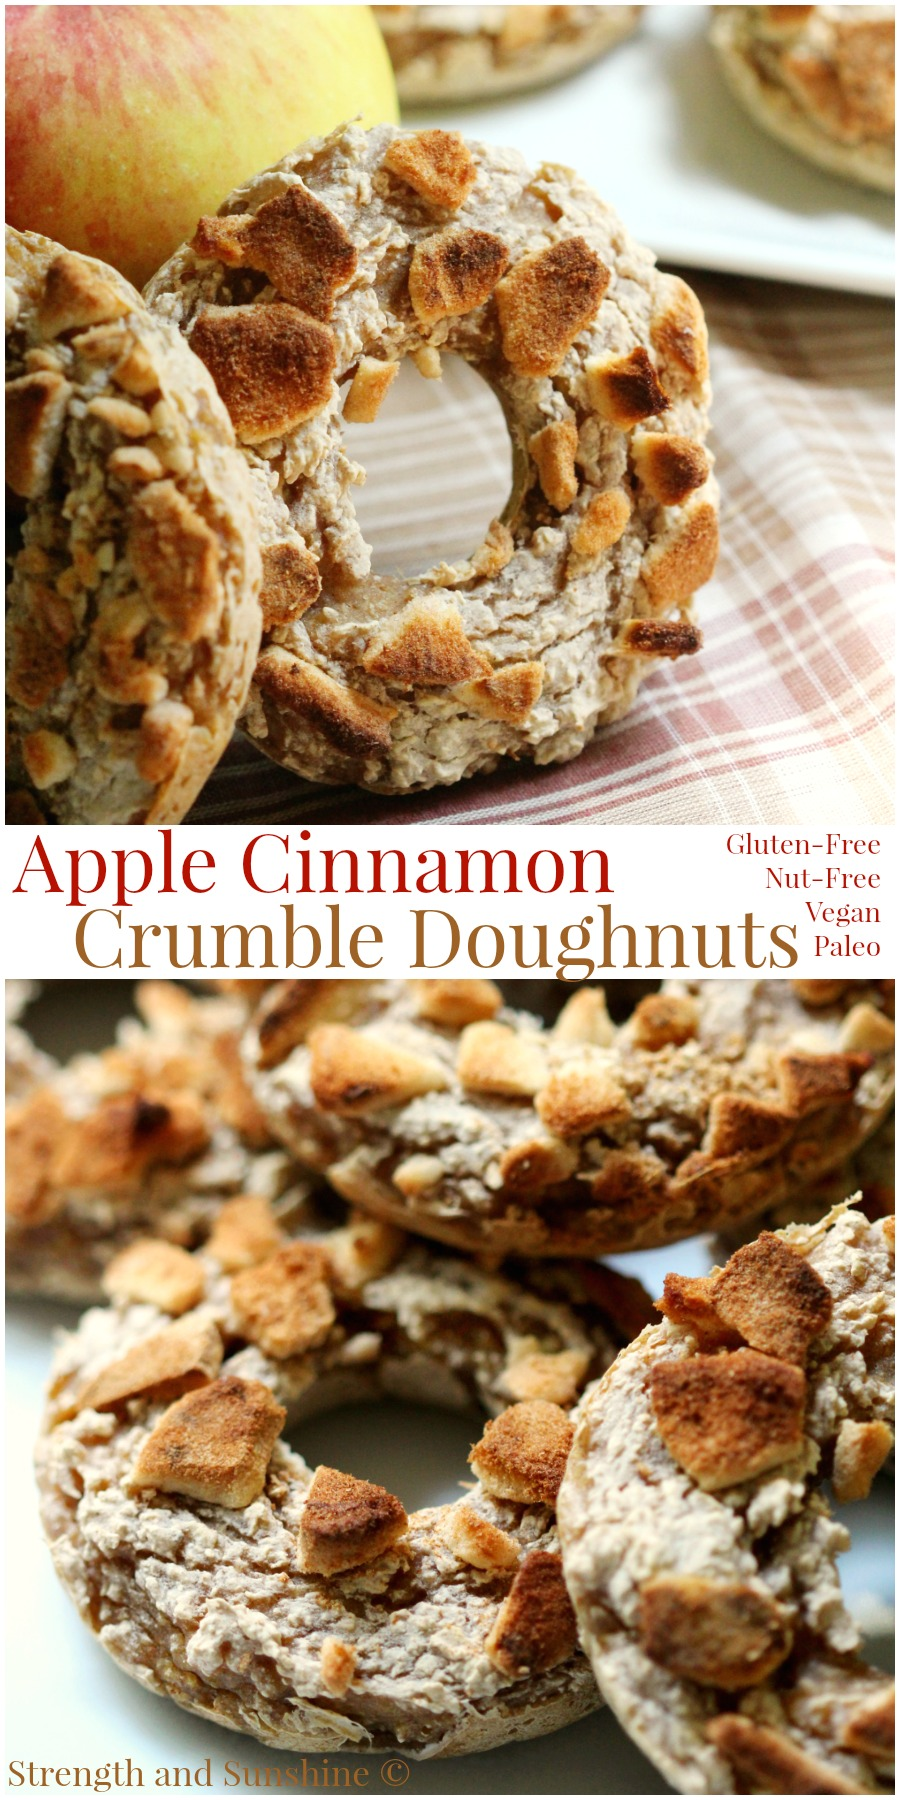 Apple Cinnamon Crumble Doughnuts | Strength and Sunshine @RebeccaGF666 All the seasonal flavors of an apple crumble in the form of an easy allergy-friendly baked doughnut! These apple cinnamon crumble doughnuts allow you to take your crumble on the go without the need for a fork or spoon! A healthy gluten-free, nut-free, vegan, and paleo breakfast or dessert recipe!